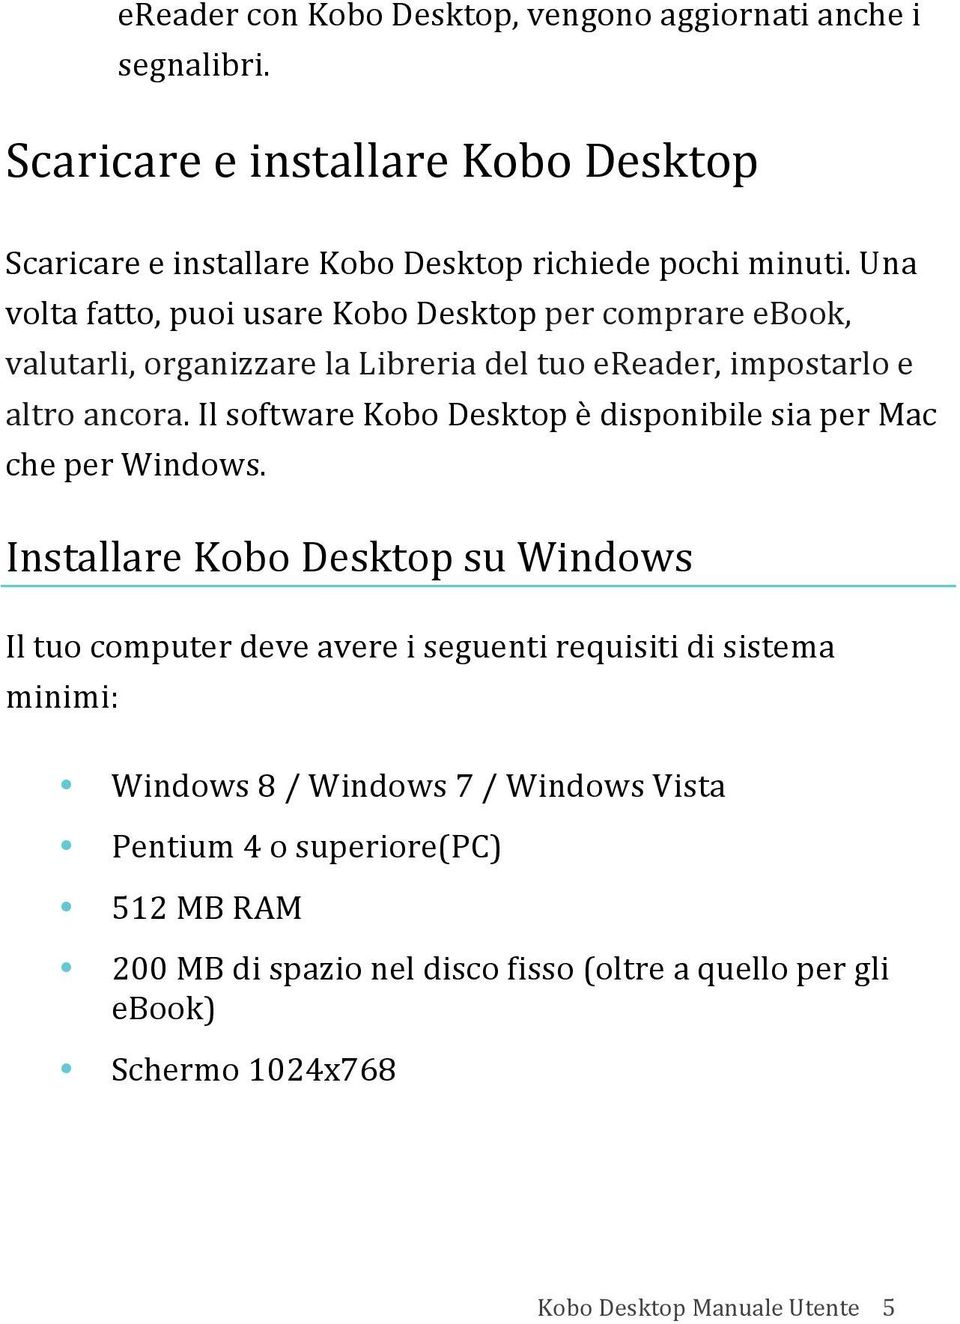 Il software Kobo Desktop è disponibile sia per Mac che per Windows.